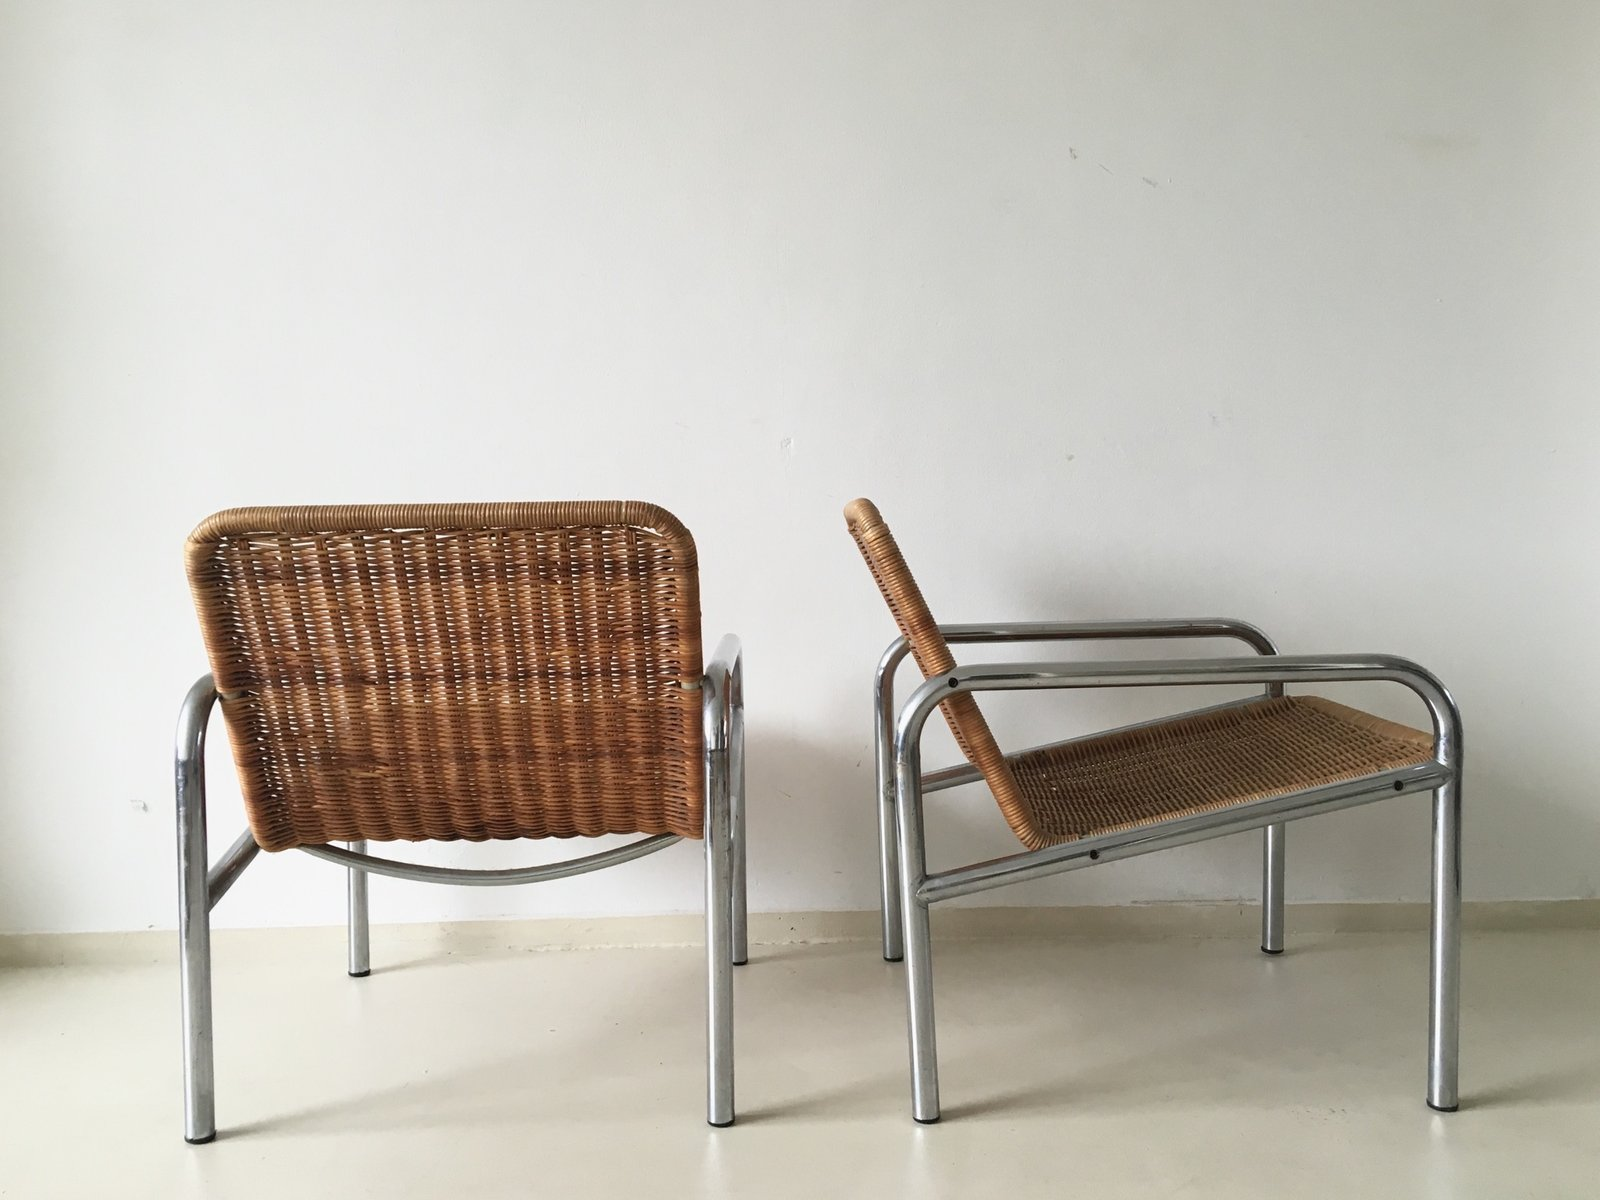 Captivating Vintage Wicker And Metal Lounge Chair, 1960s